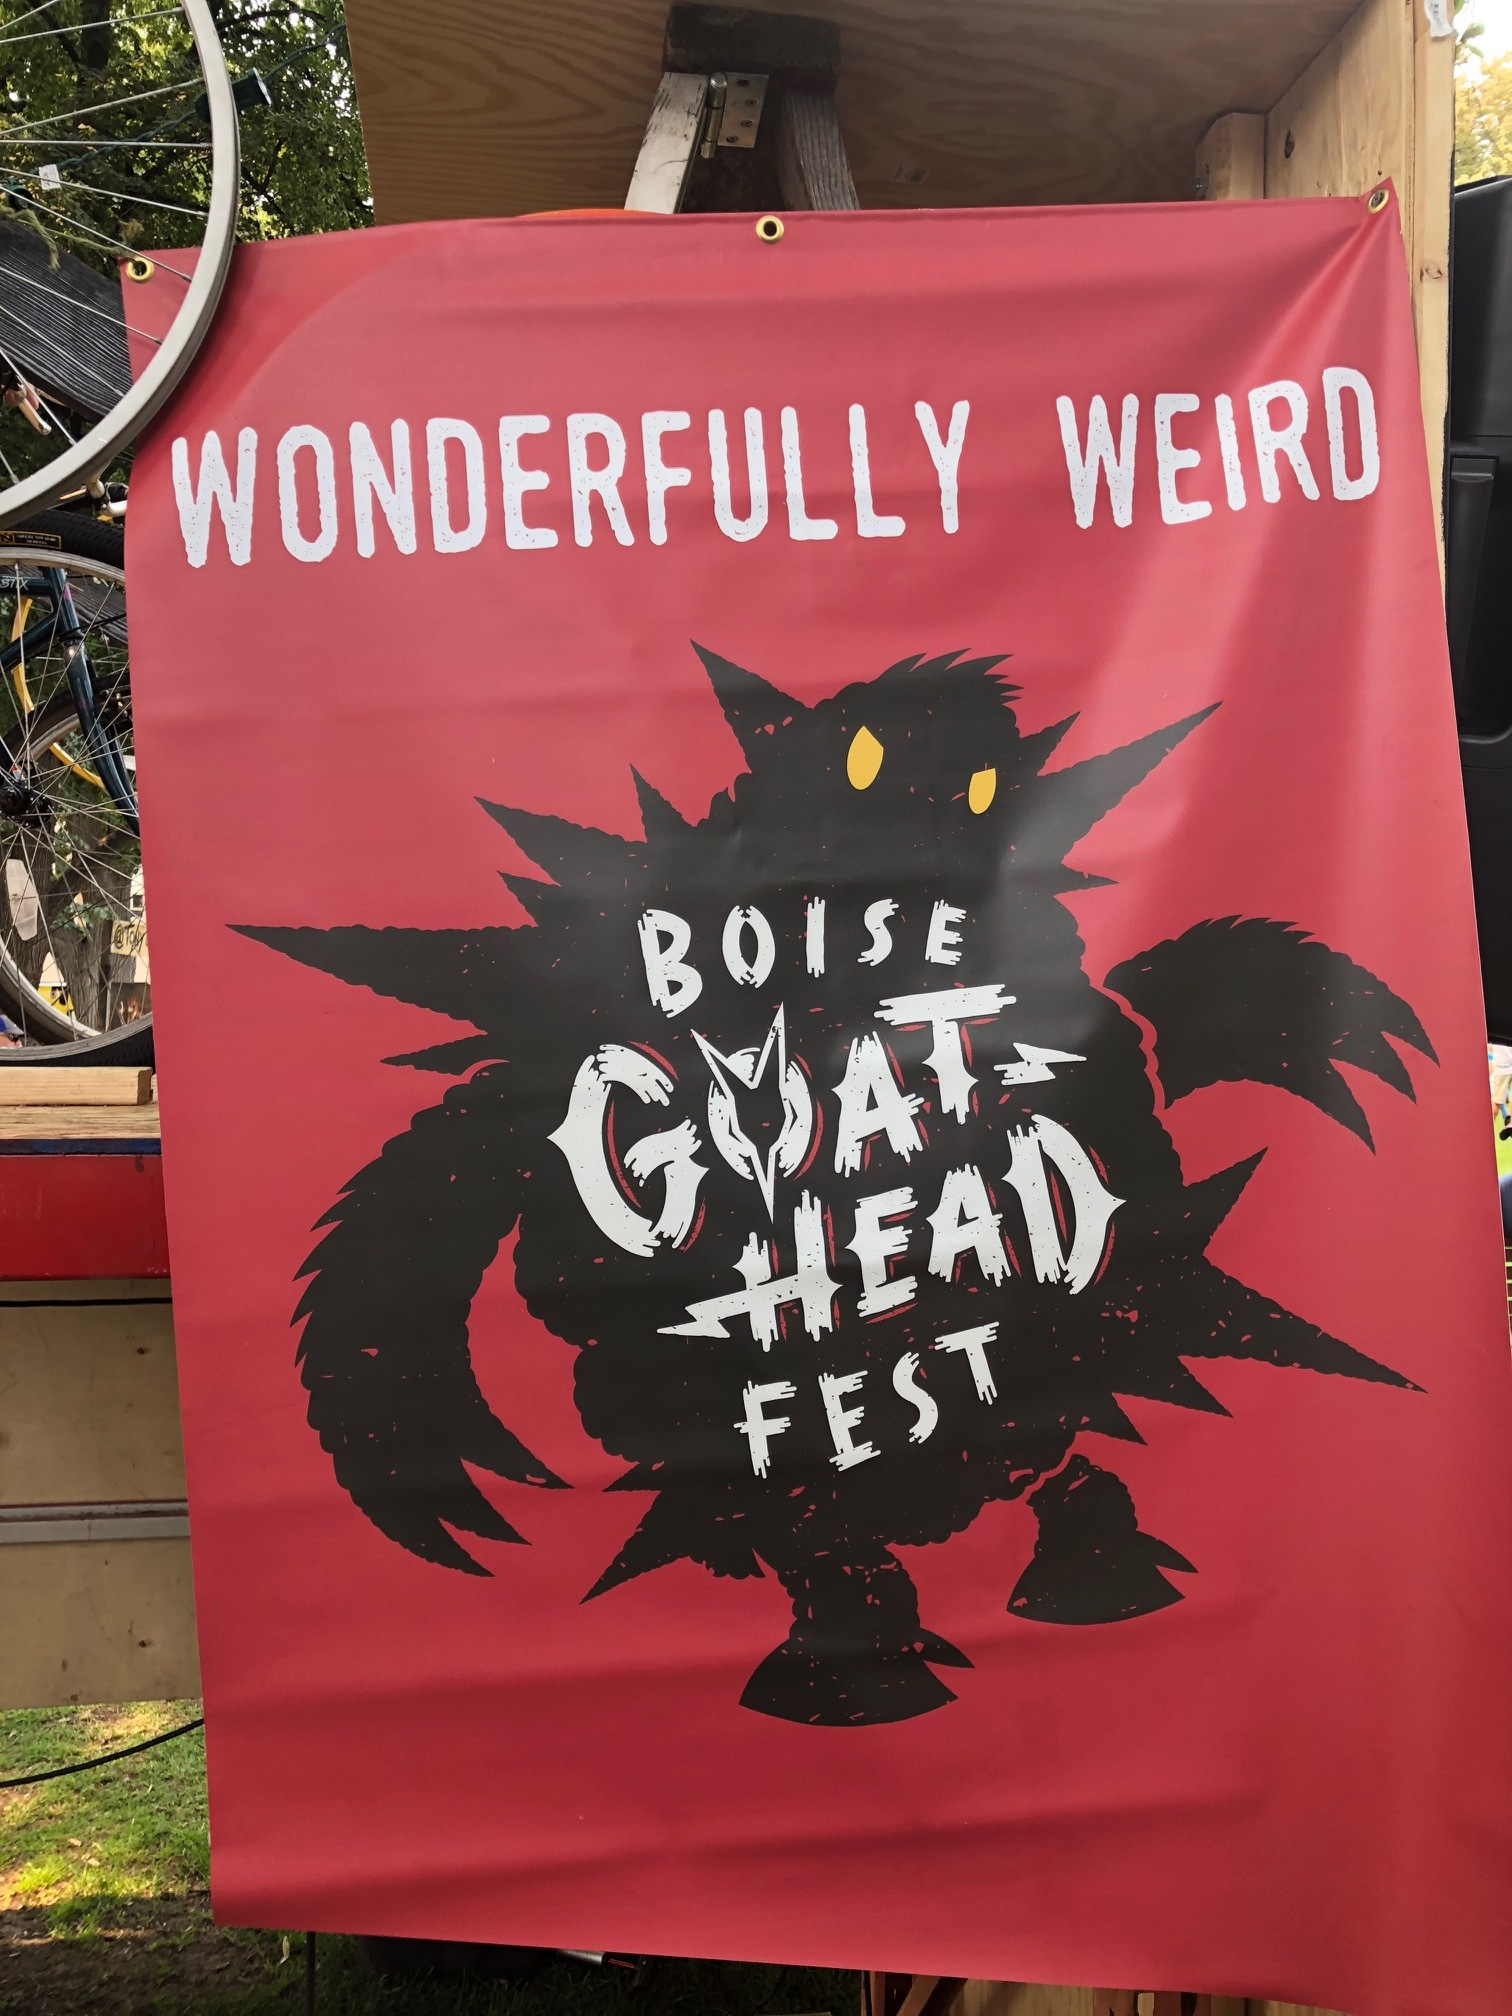 This festival WAS wonderfully weird, but we had and awesome time!